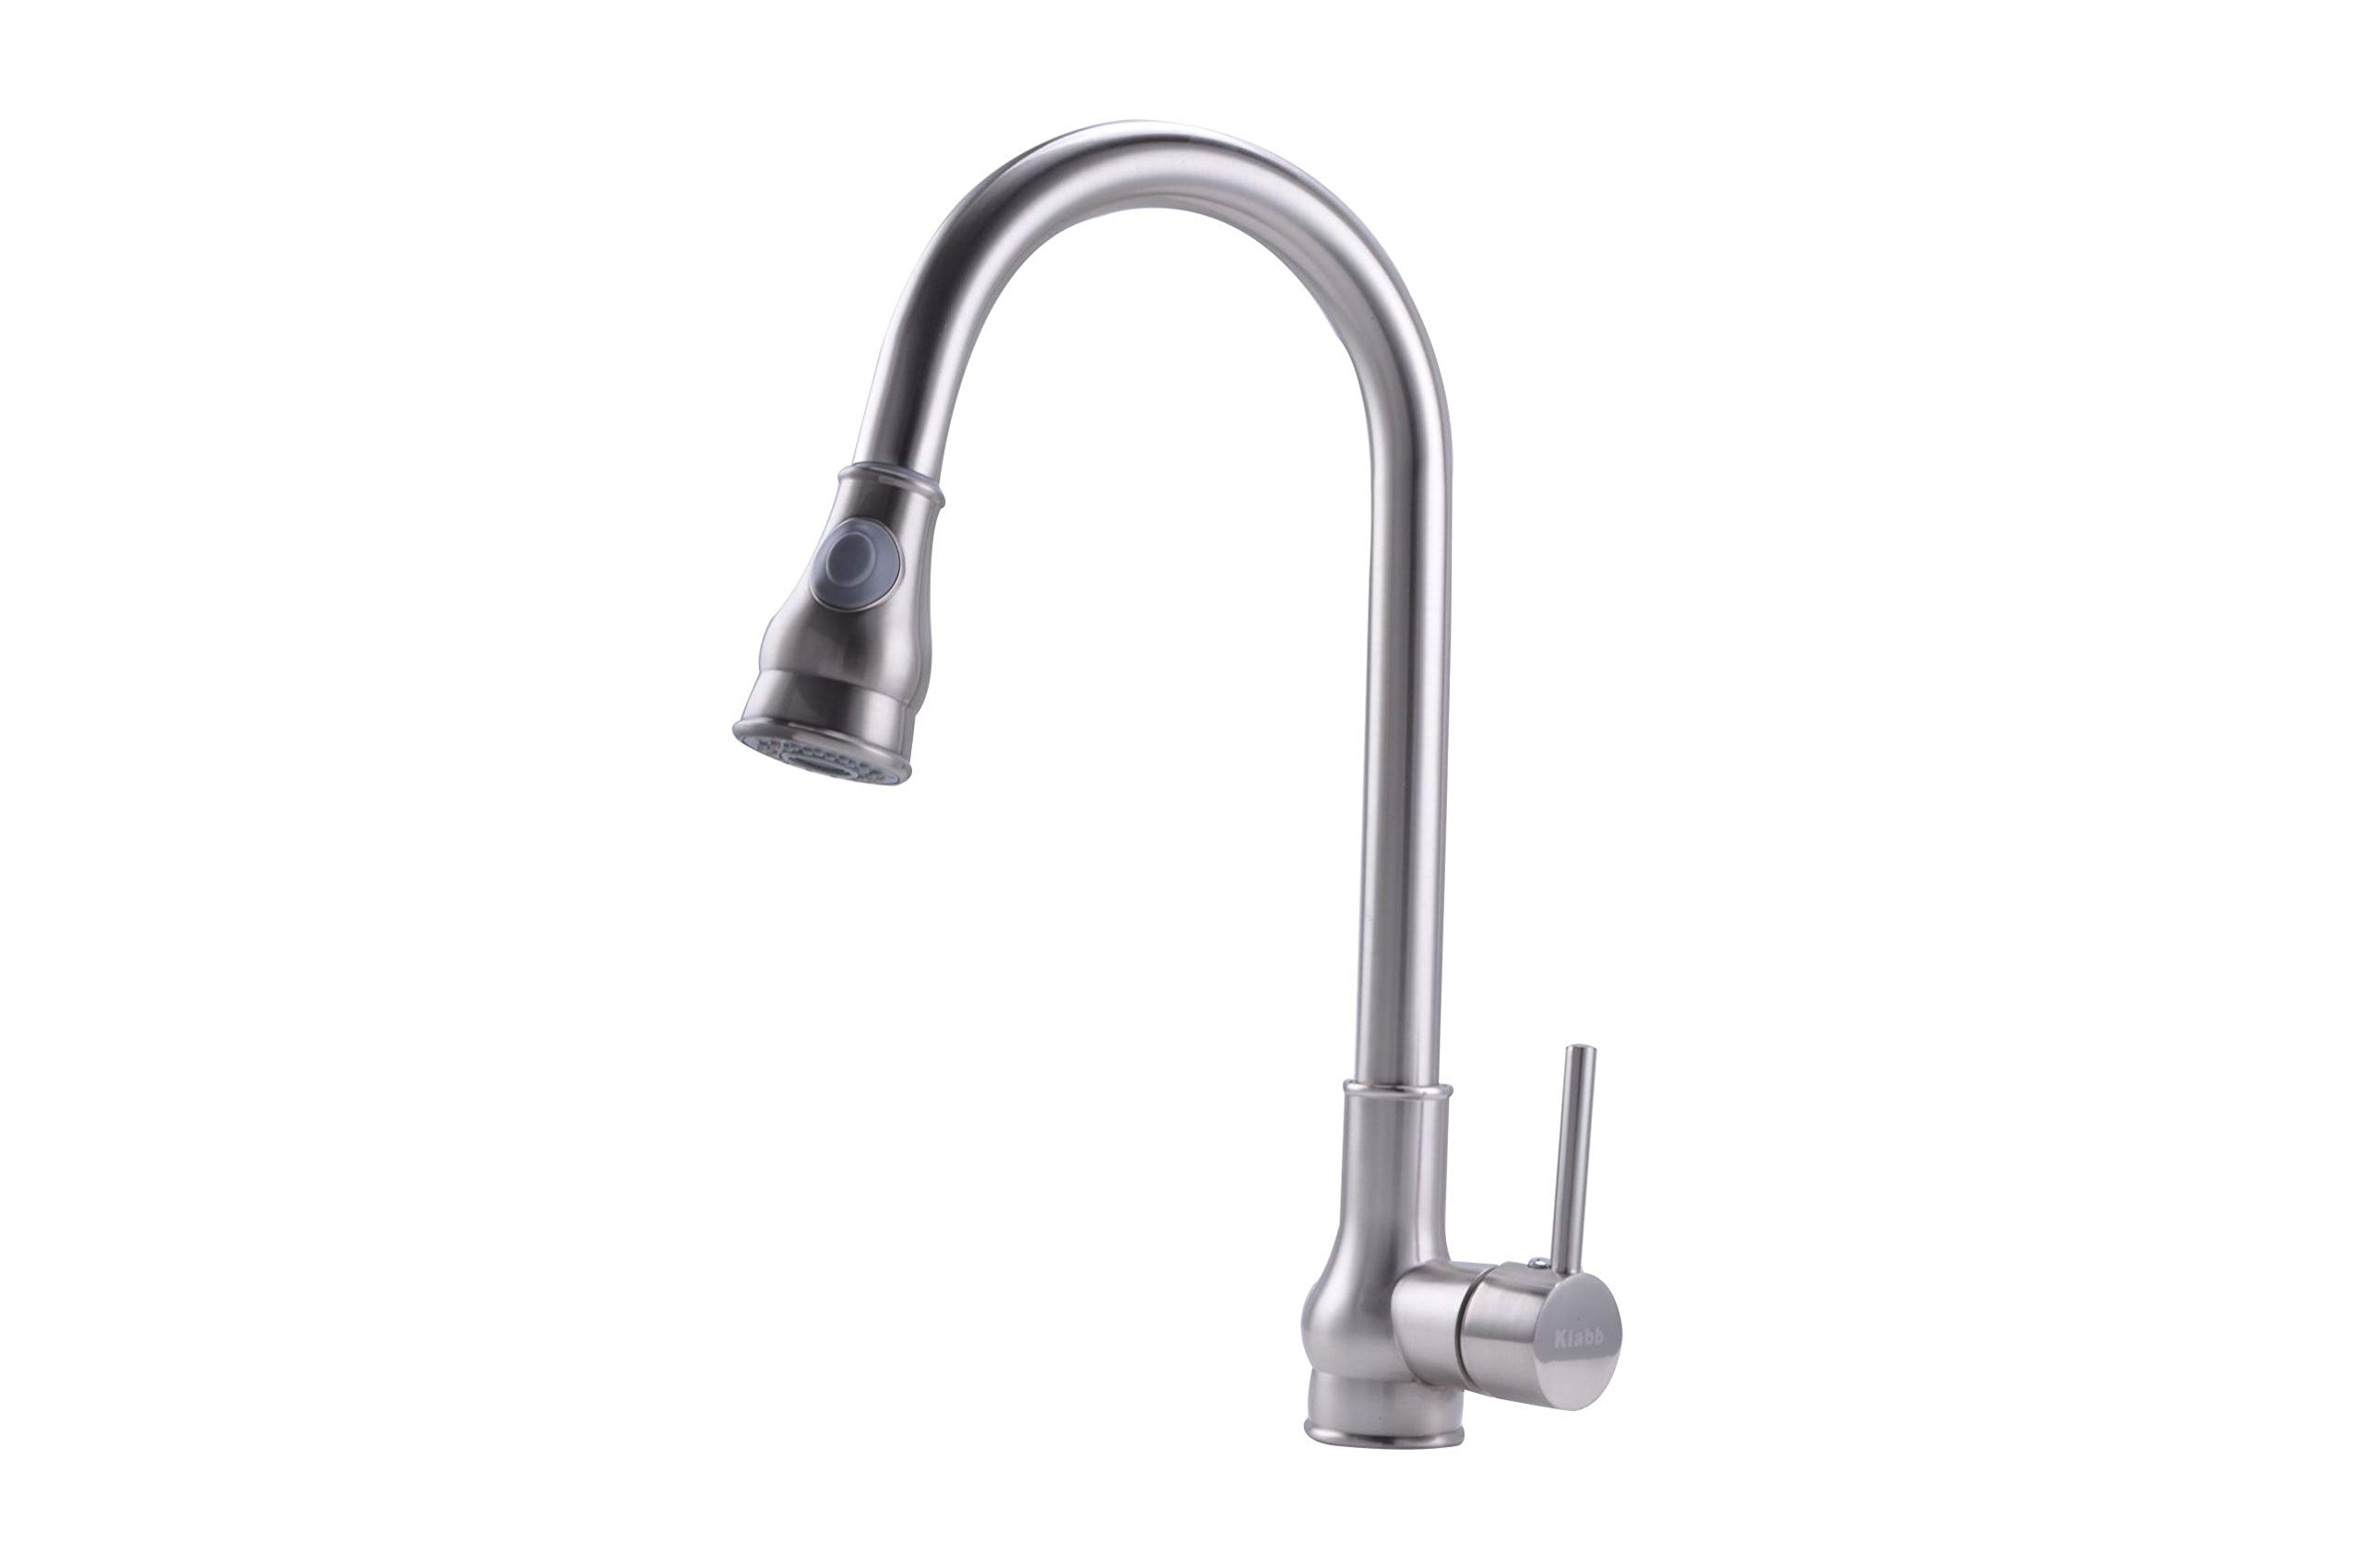 Klabb Faucet KF 80001 Single Handle Pull-Down Kitchen Faucet, Brushed nickle